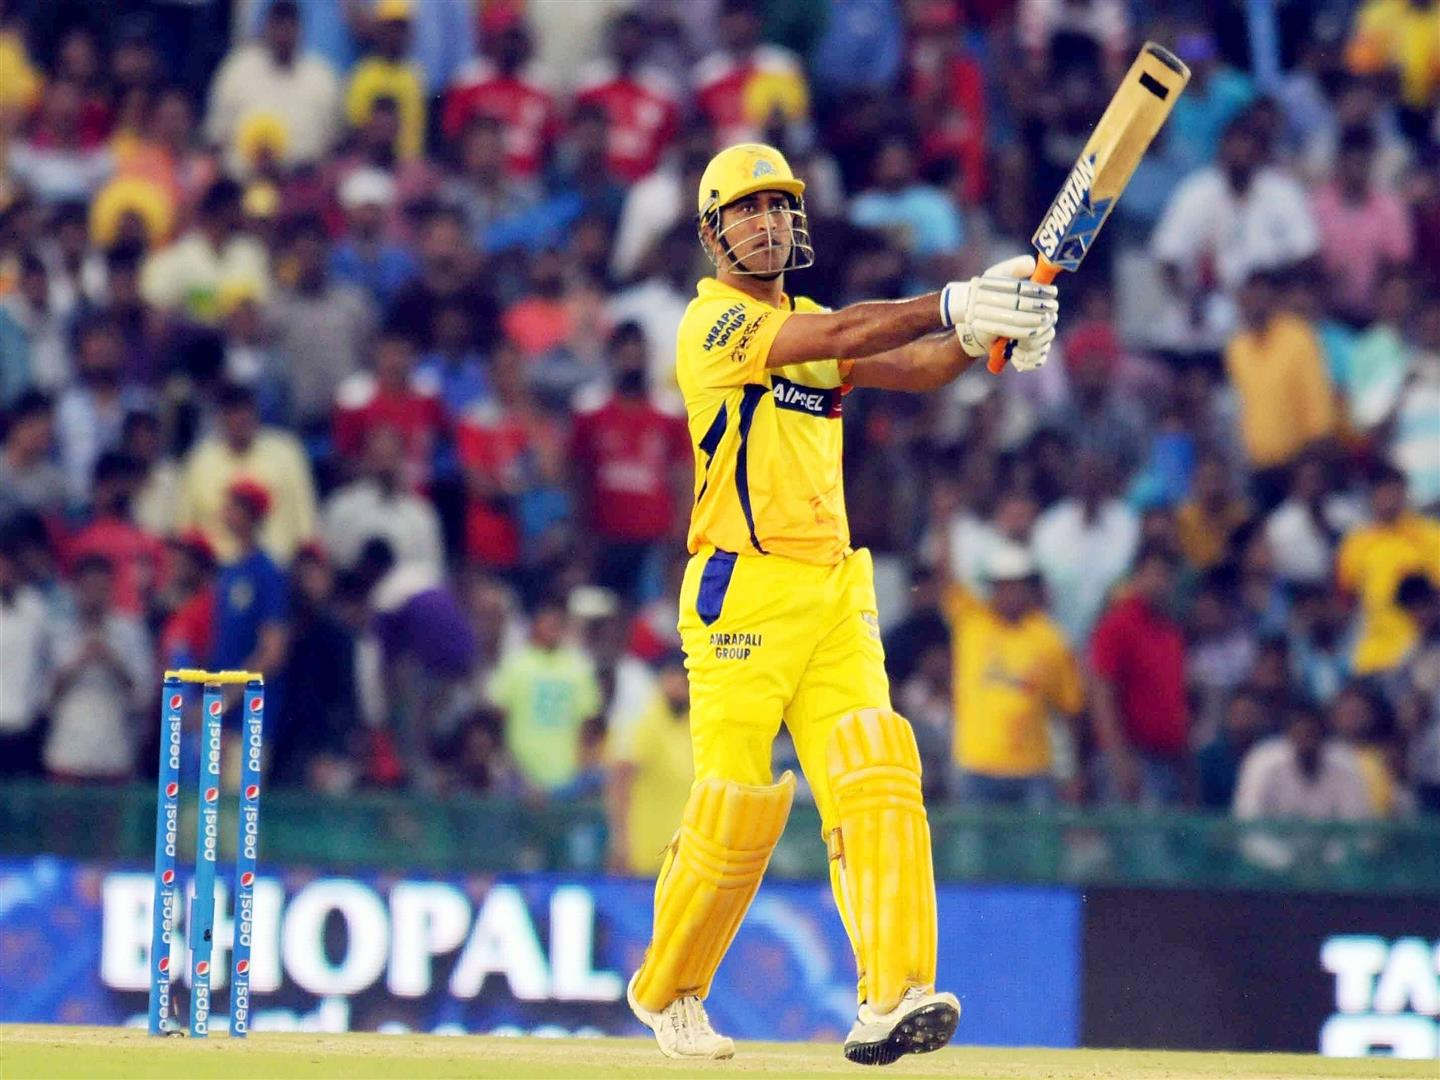 1440x1080 MS Dhoni in CSK IPL Match Wallpaper